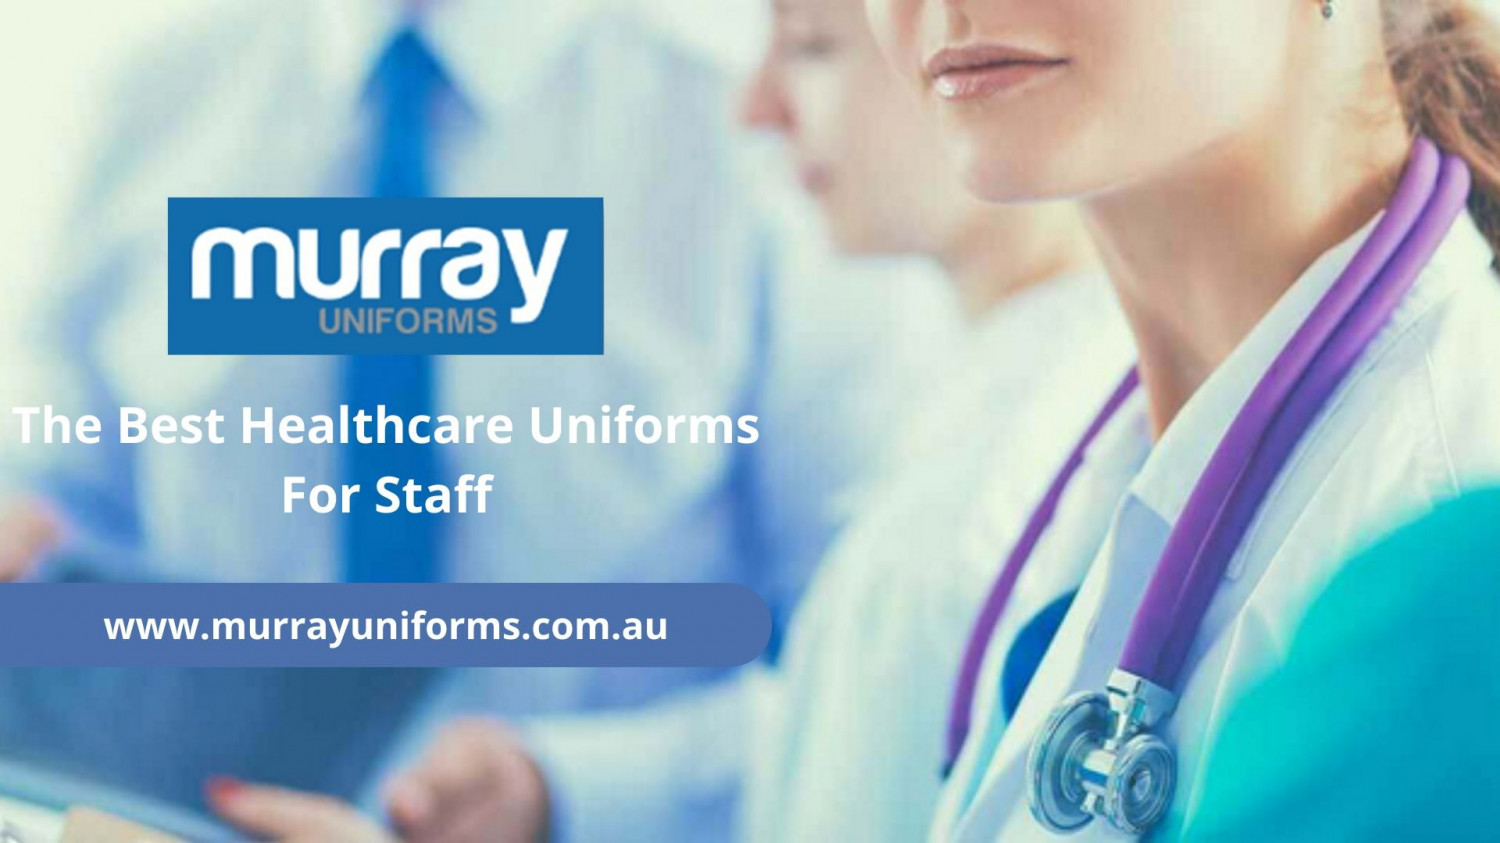 The Best Healthcare Uniforms For Staff - Murray Uniforms Infographic